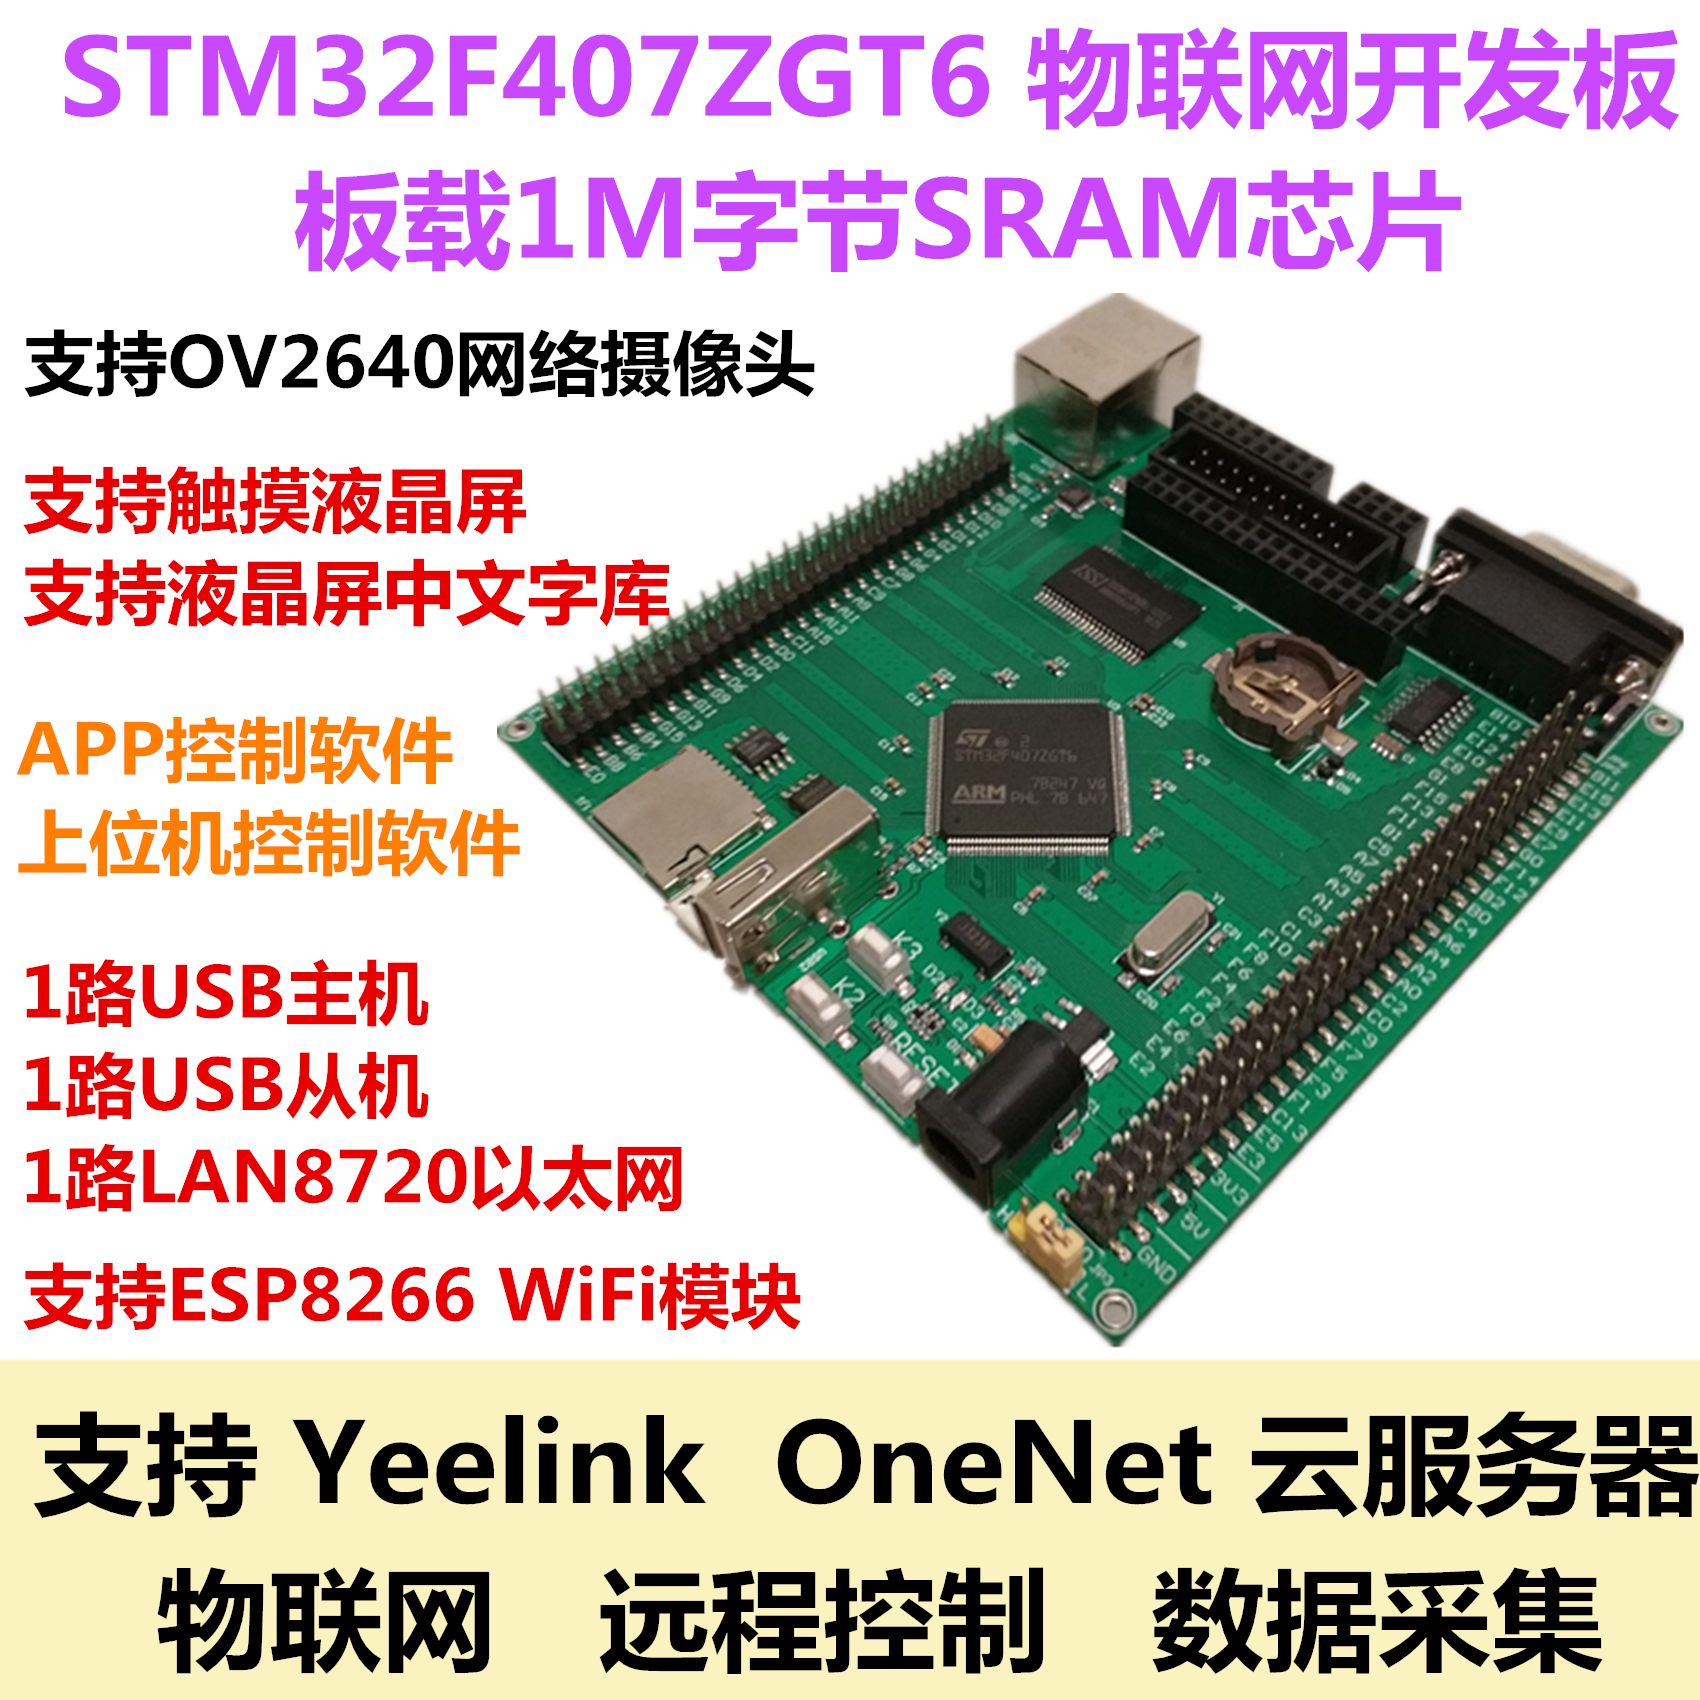 wisdom stm32f407 embedded development board isolation rc522 can 485 232 internet of things Internet of Things, WiFi Stm32f407zgt6 Development Board, Remote Control, Cloud Server, Intelligent Things